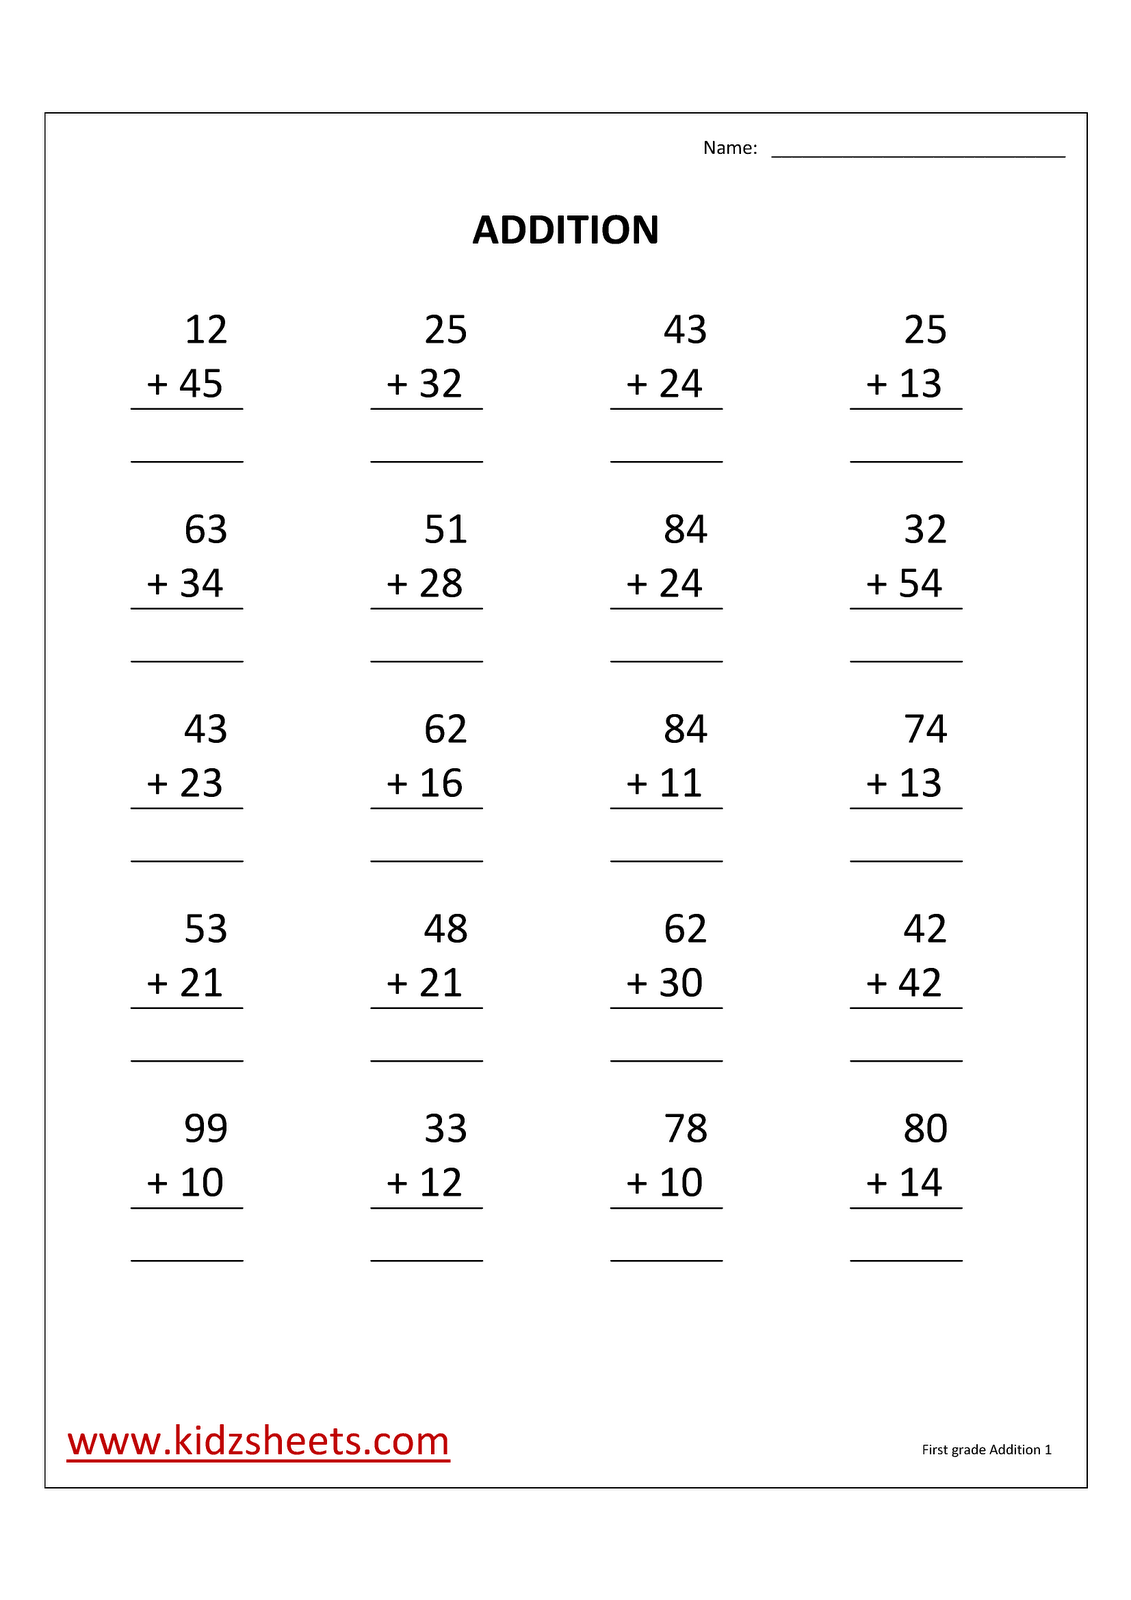 Kidz Worksheets August 2012 – 1st Grade Math Addition Worksheets